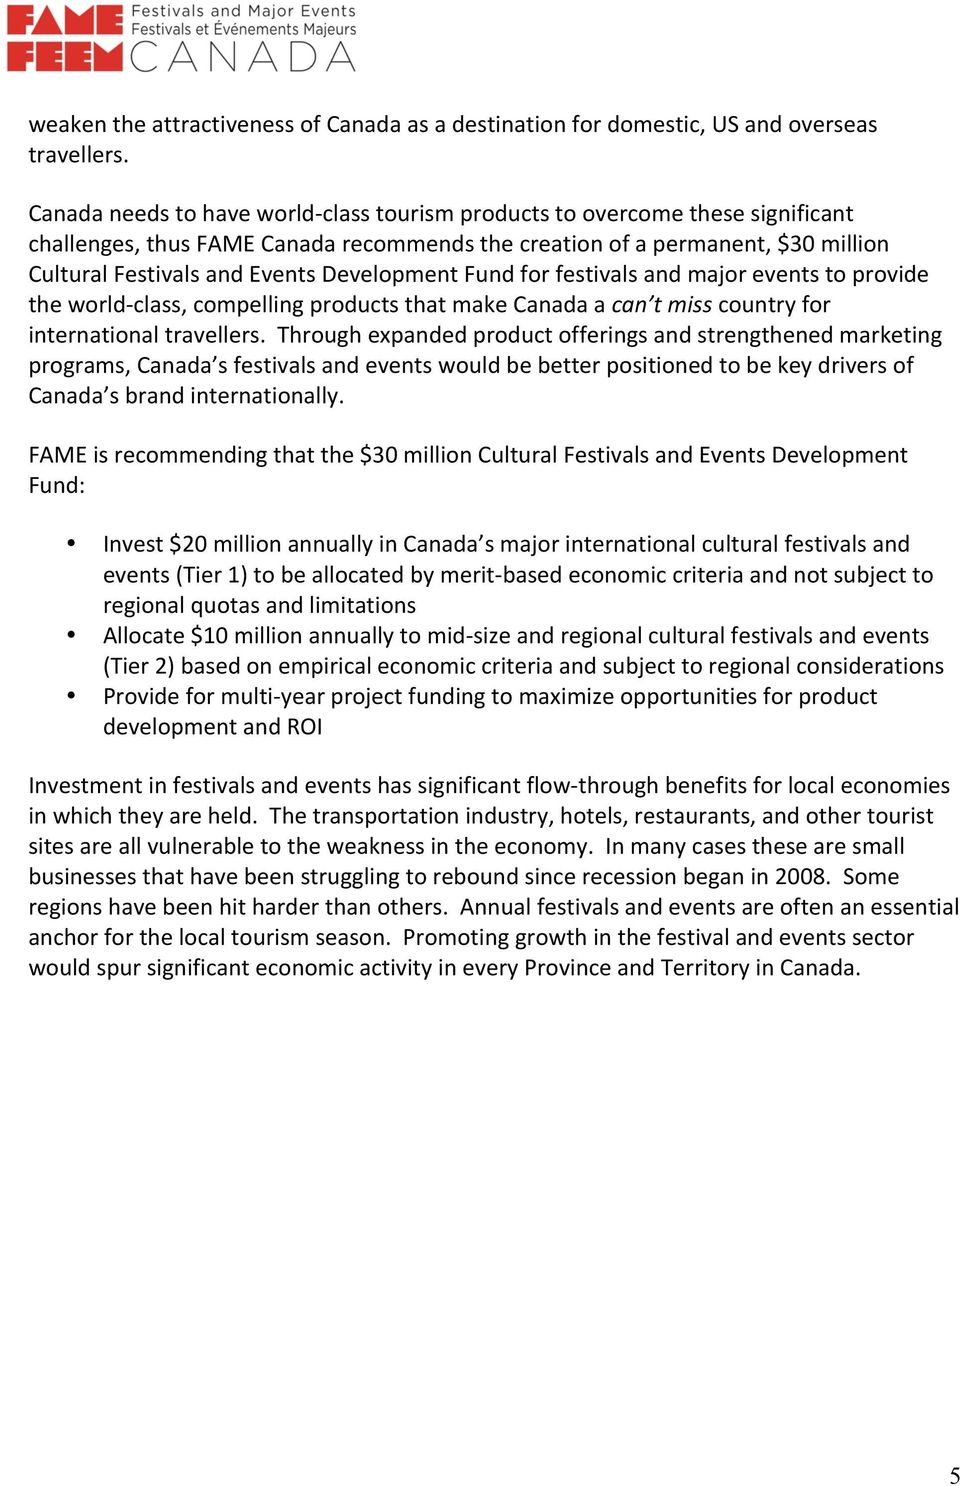 Development Fund for festivals and major events to provide the world- class, compelling products that make Canada a can t miss country for international travellers.